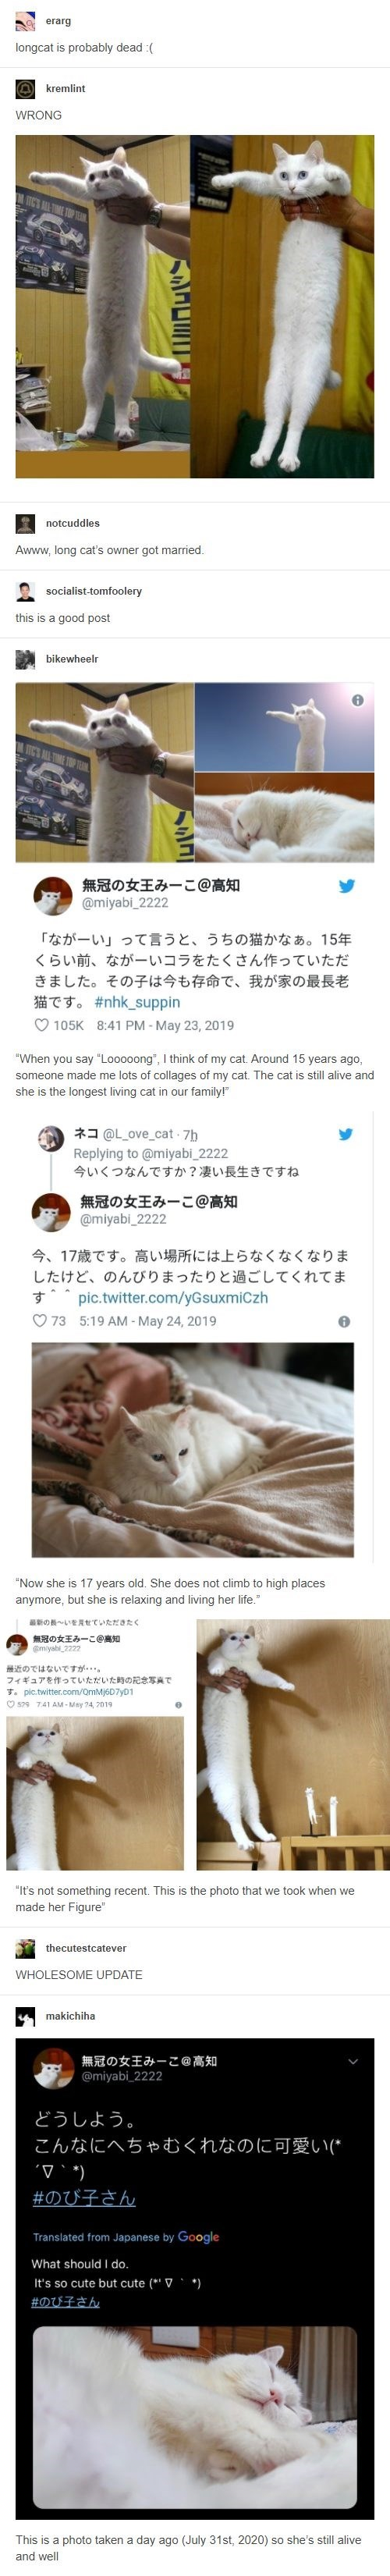 """Text - erarg longcat is probably dead :( O kremlint WRONG M ITC'S ALL TIME TOP TEAN notcuddles Awww, long cat's owner got married. socialist-tomfoolery this is a good post bikewheelr M IIC'S ALL TIME TOP TEAM 無冠の女王みーこ@高知 @miyabi_2222 「なが一い」って言うと、うちの猫かなあ。15年 くらい前、なが一いコラをたくさん作っていただ きました。その子は今も存命で、 我が家の最長老 T T. #nhk_suppin O 105K 8:41 PM - May 23, 2019 """"When you say """"Looooong"""", I think of my cat. Around 15 years ago, someone made me lots of collages of my cat. The cat is still alive and she is the"""